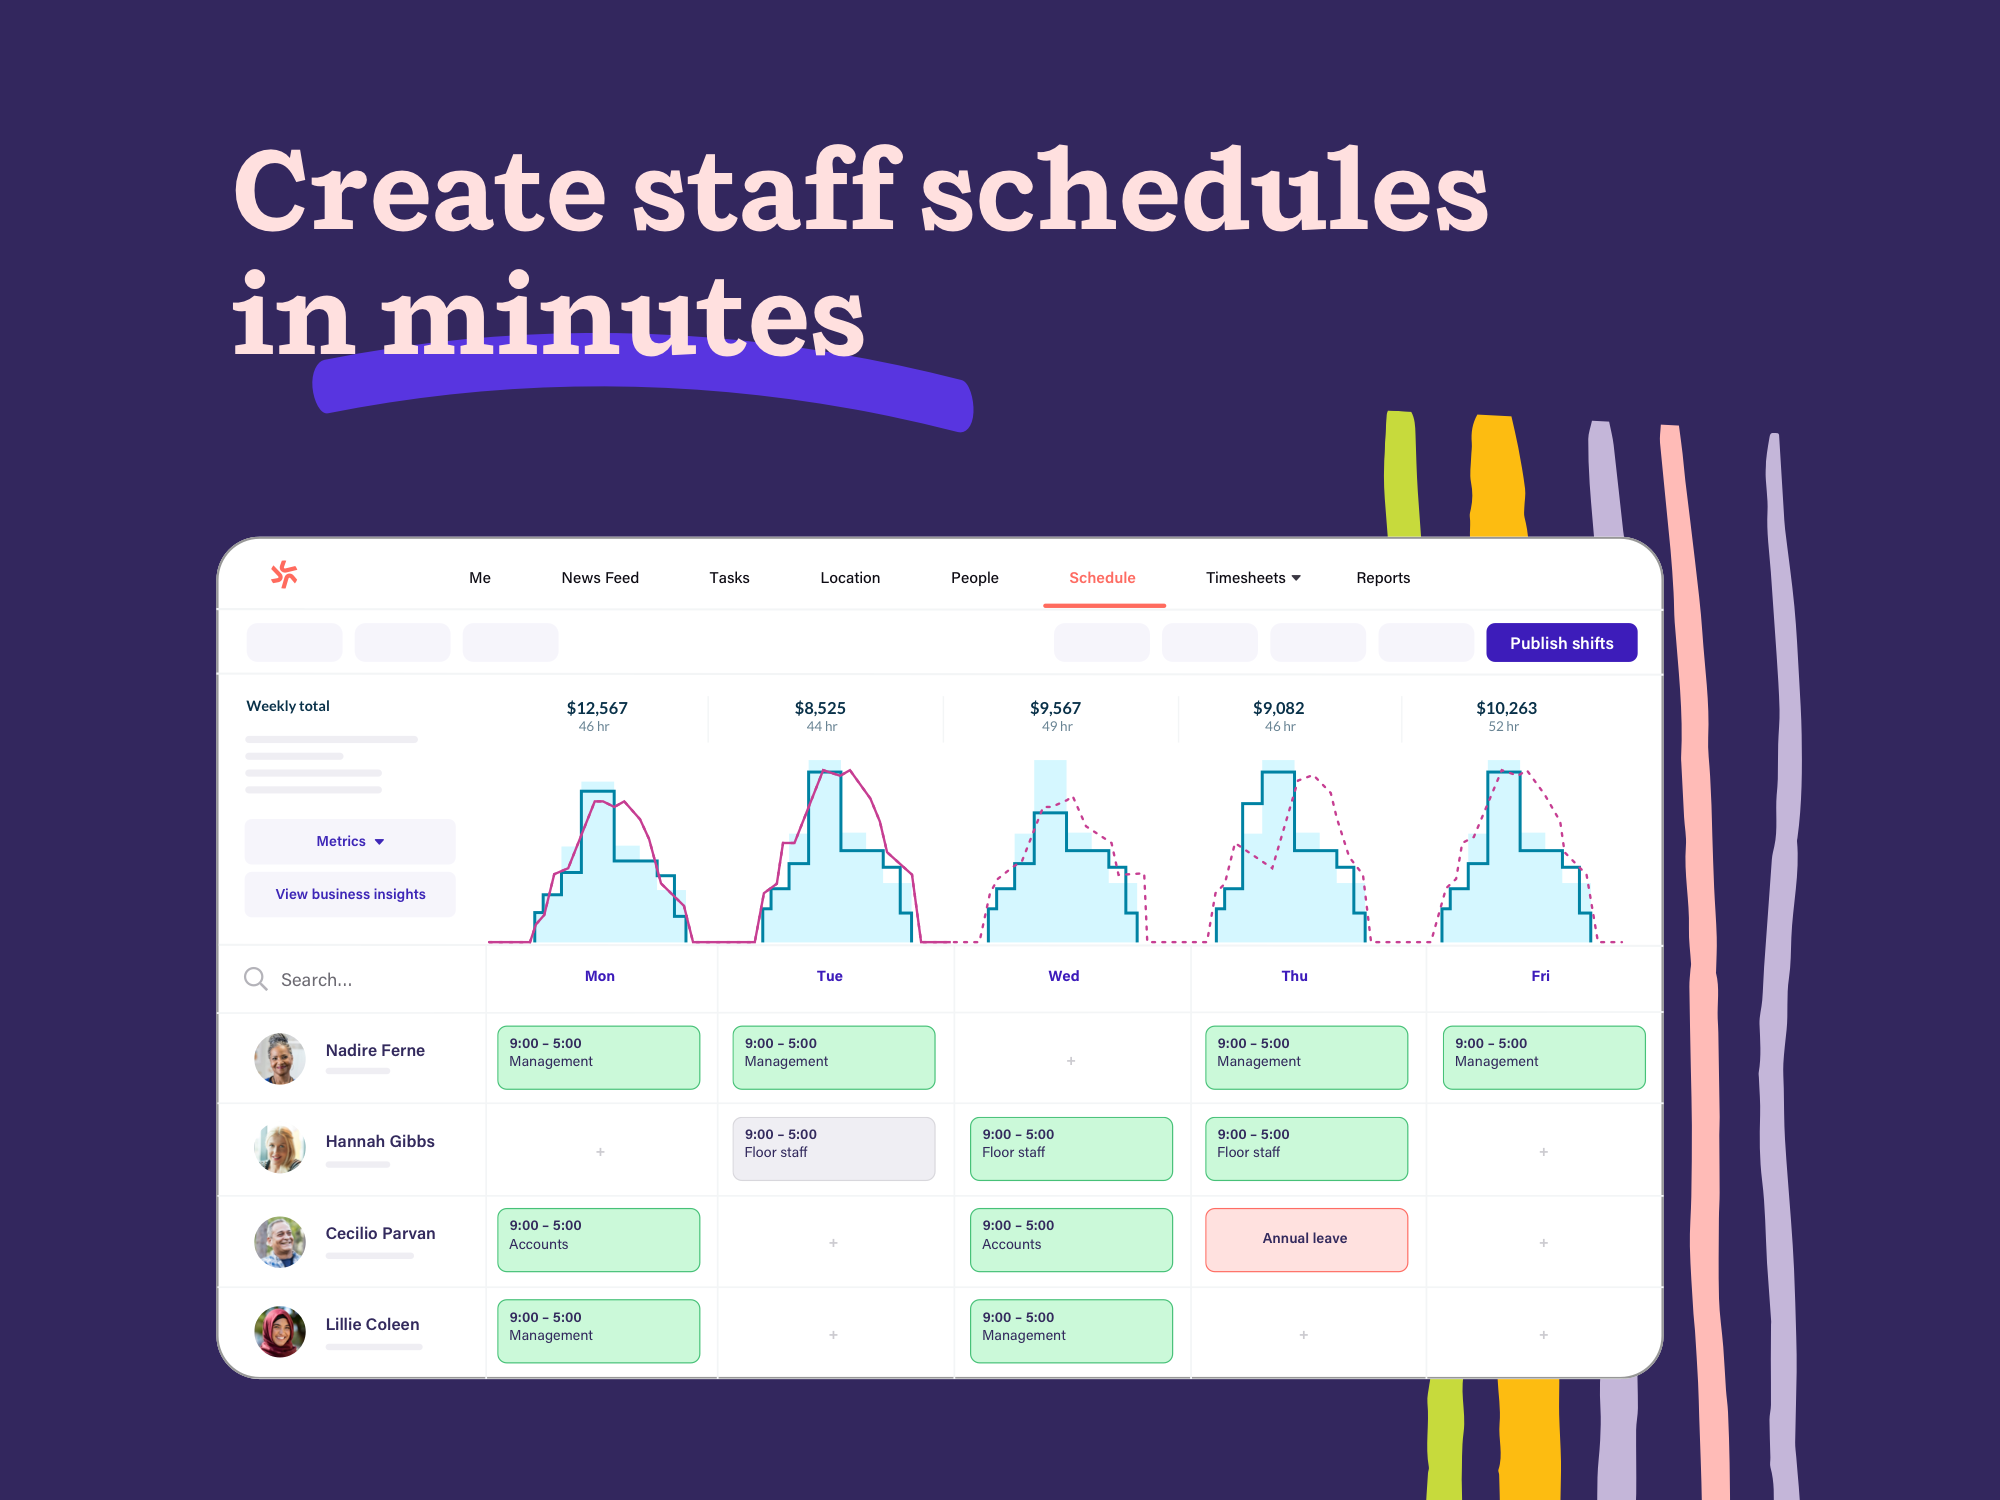 Create new shift structures instantly, drag & drop existing schedules, or use auto-scheduling to create optimized, legally compliant schedules with a single click.  Notify employees about their schedules and changes via email, SMS, or push notifications.